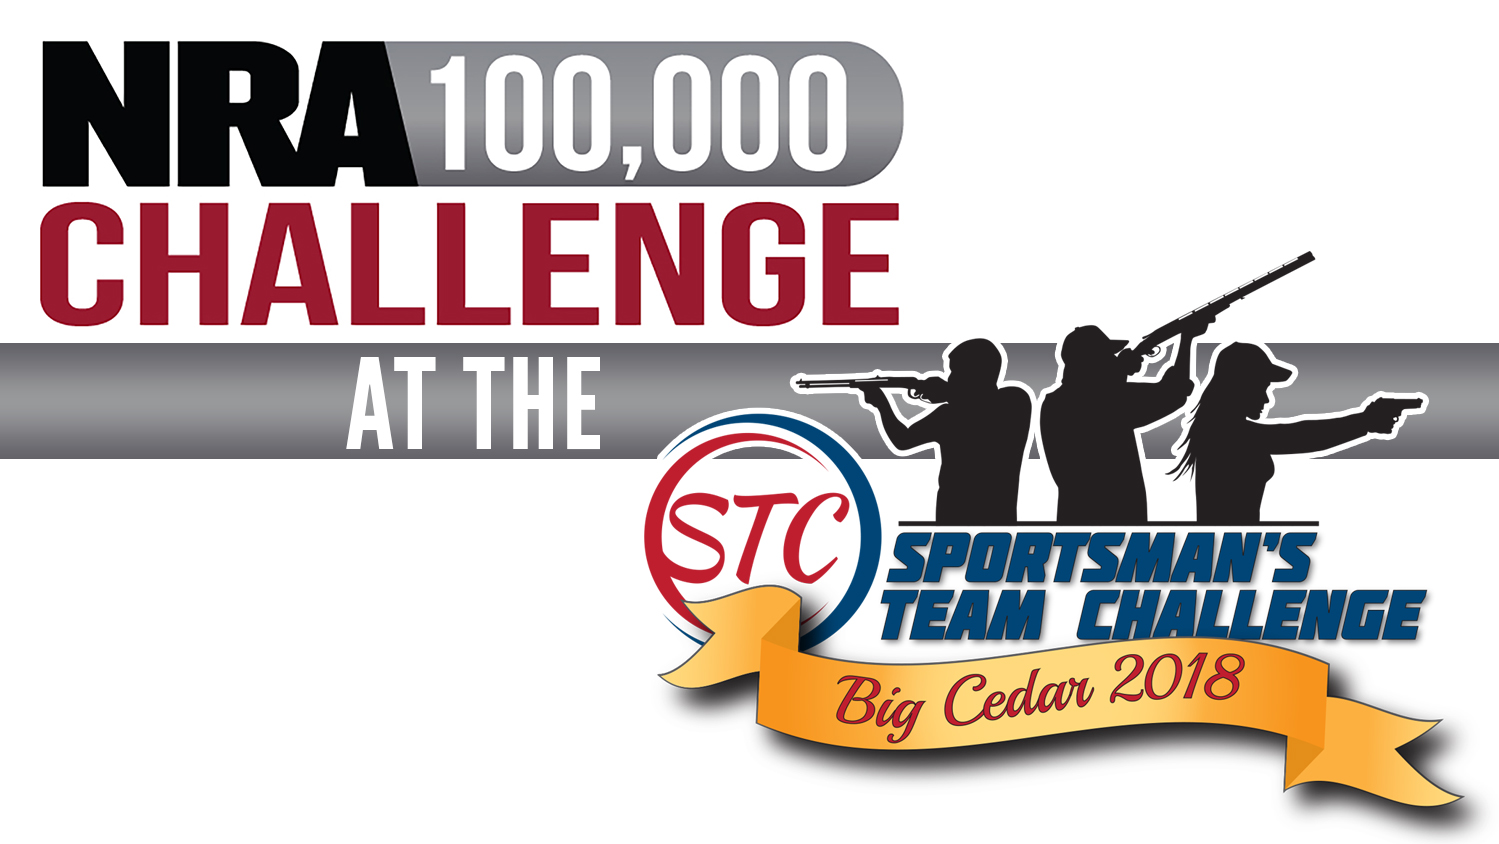 NRA Membership Sponsors 2018 Sportsman's Team Challenge, Plans Final Push in 100K Challenge